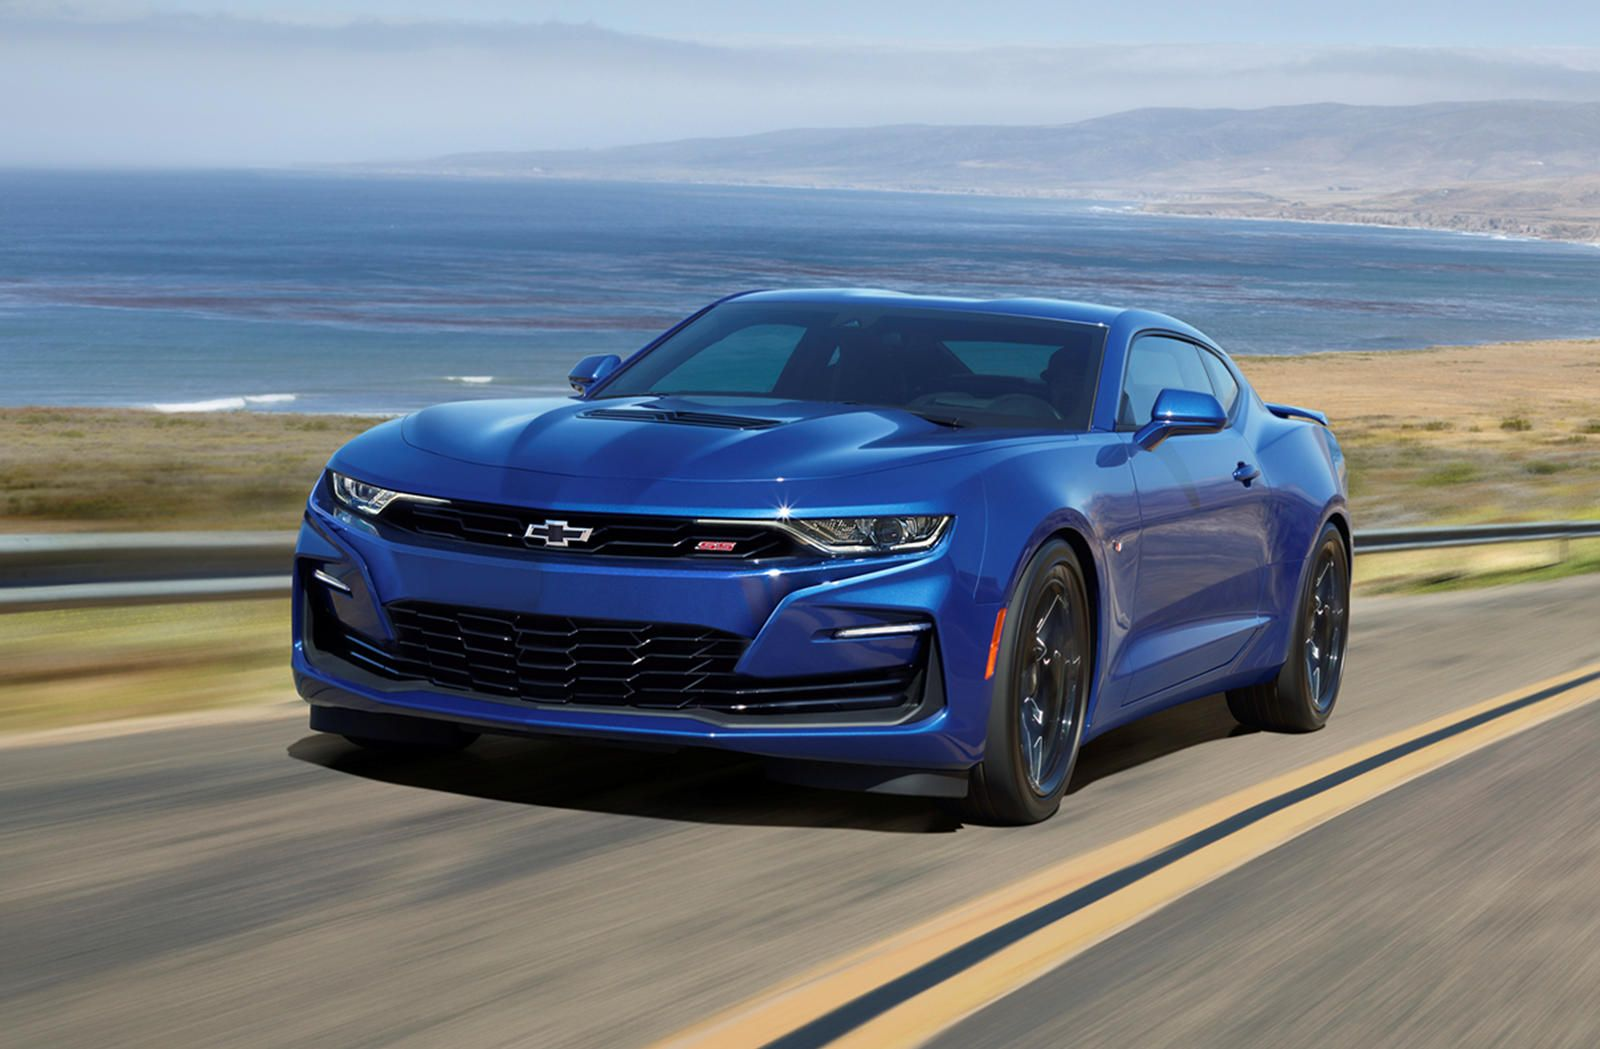 Here S What S New On The 2021 Chevy Camaro In 2020 Camaro Chevy Camaro